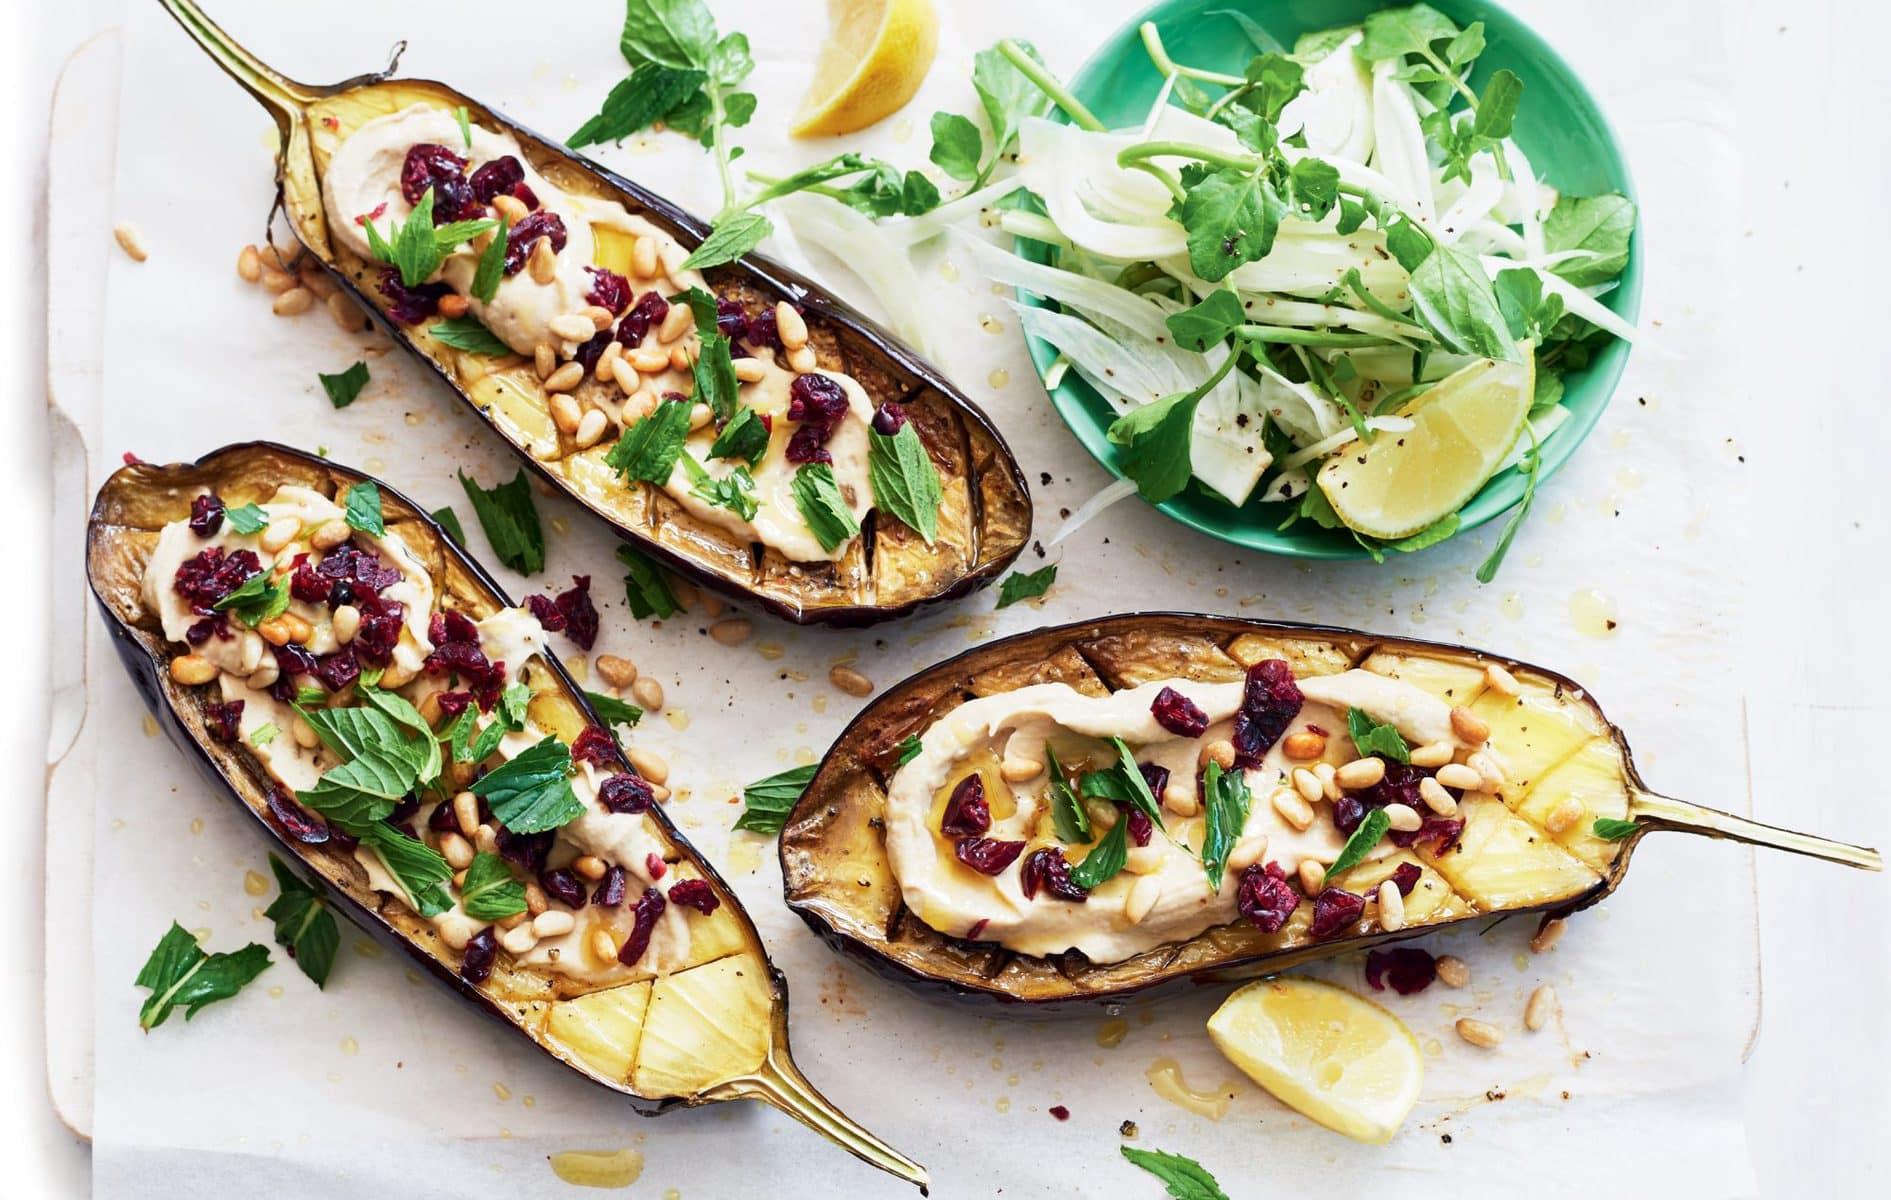 Baked eggplant with cranberry and mint